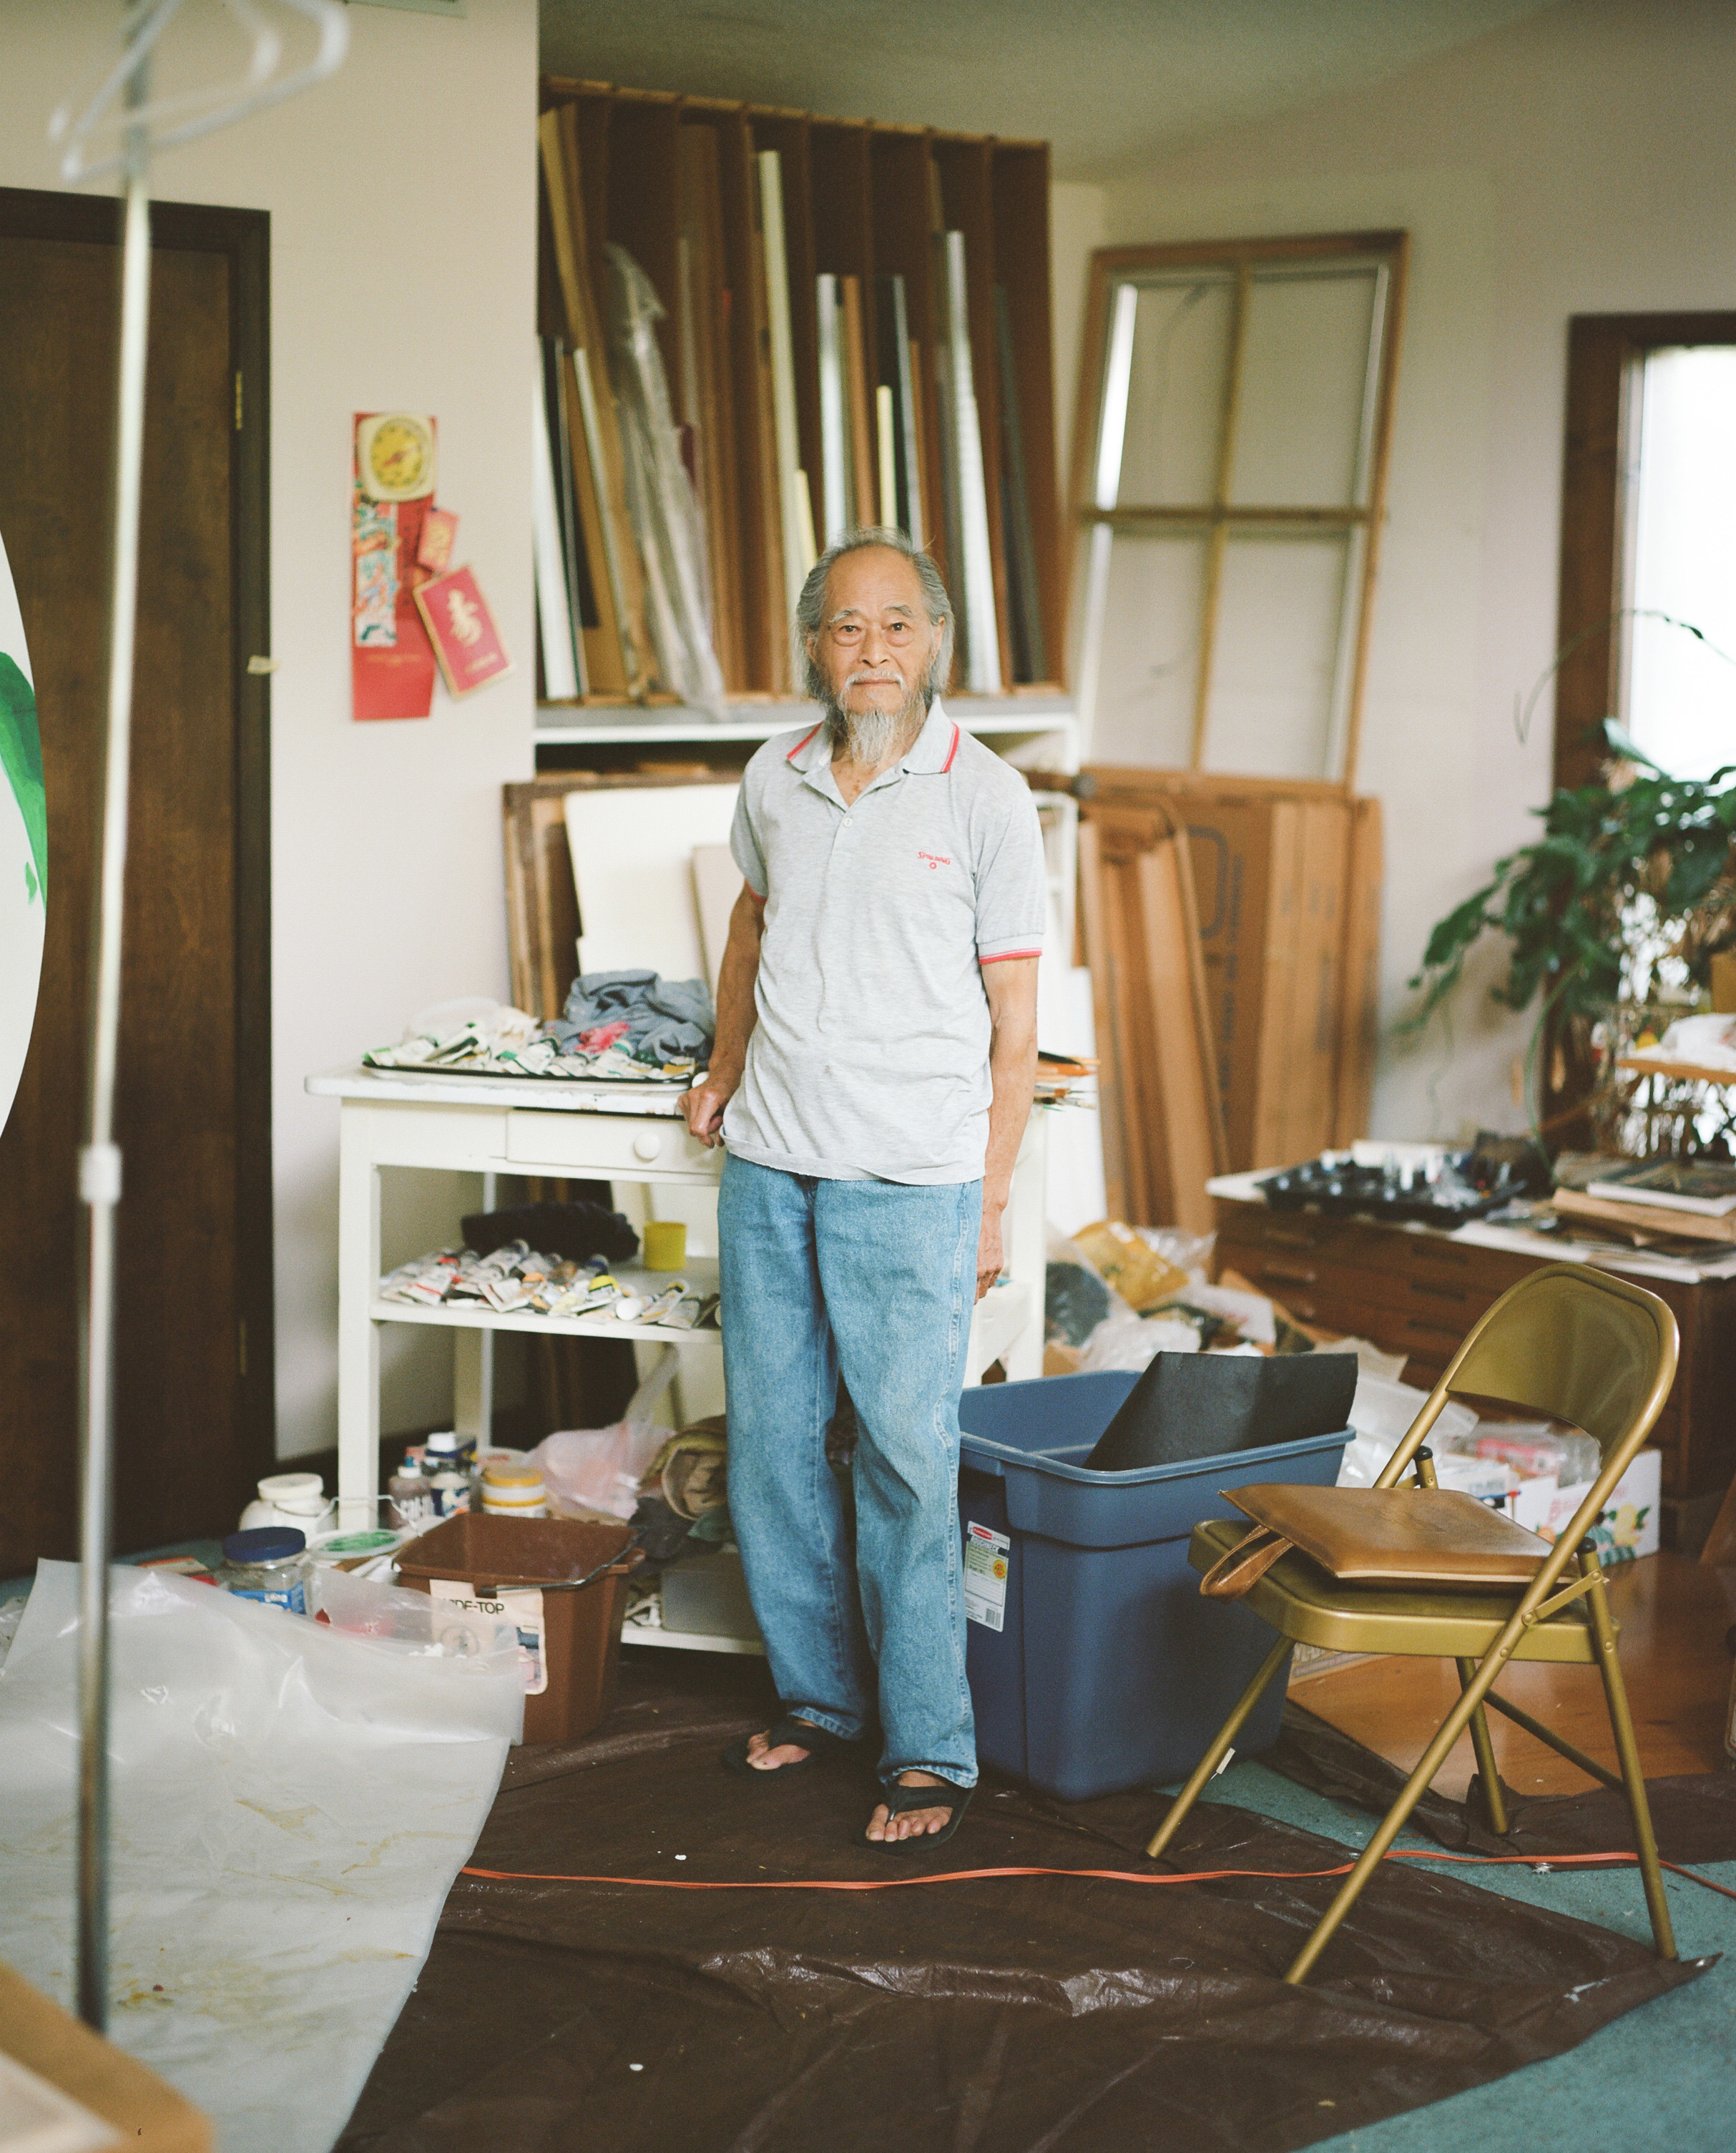 An older man in jeans and flip flops stands in a studio